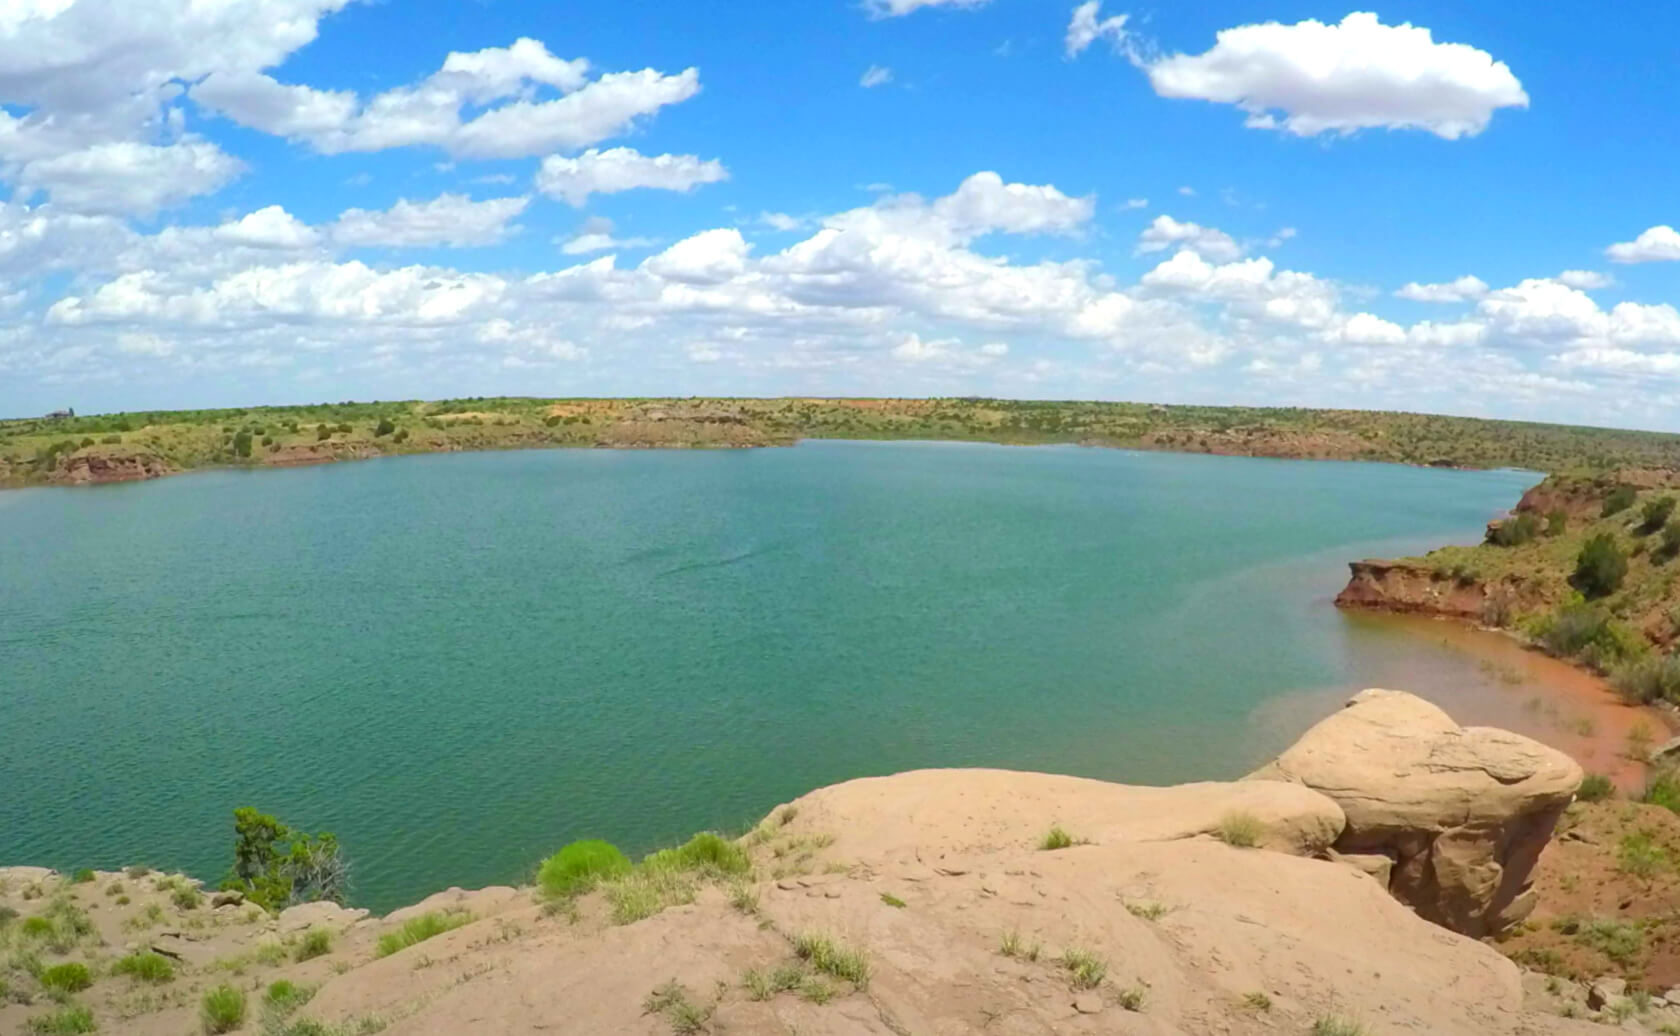 Ute-Lake-Fishing-Guide-Report-New-Mexico-04